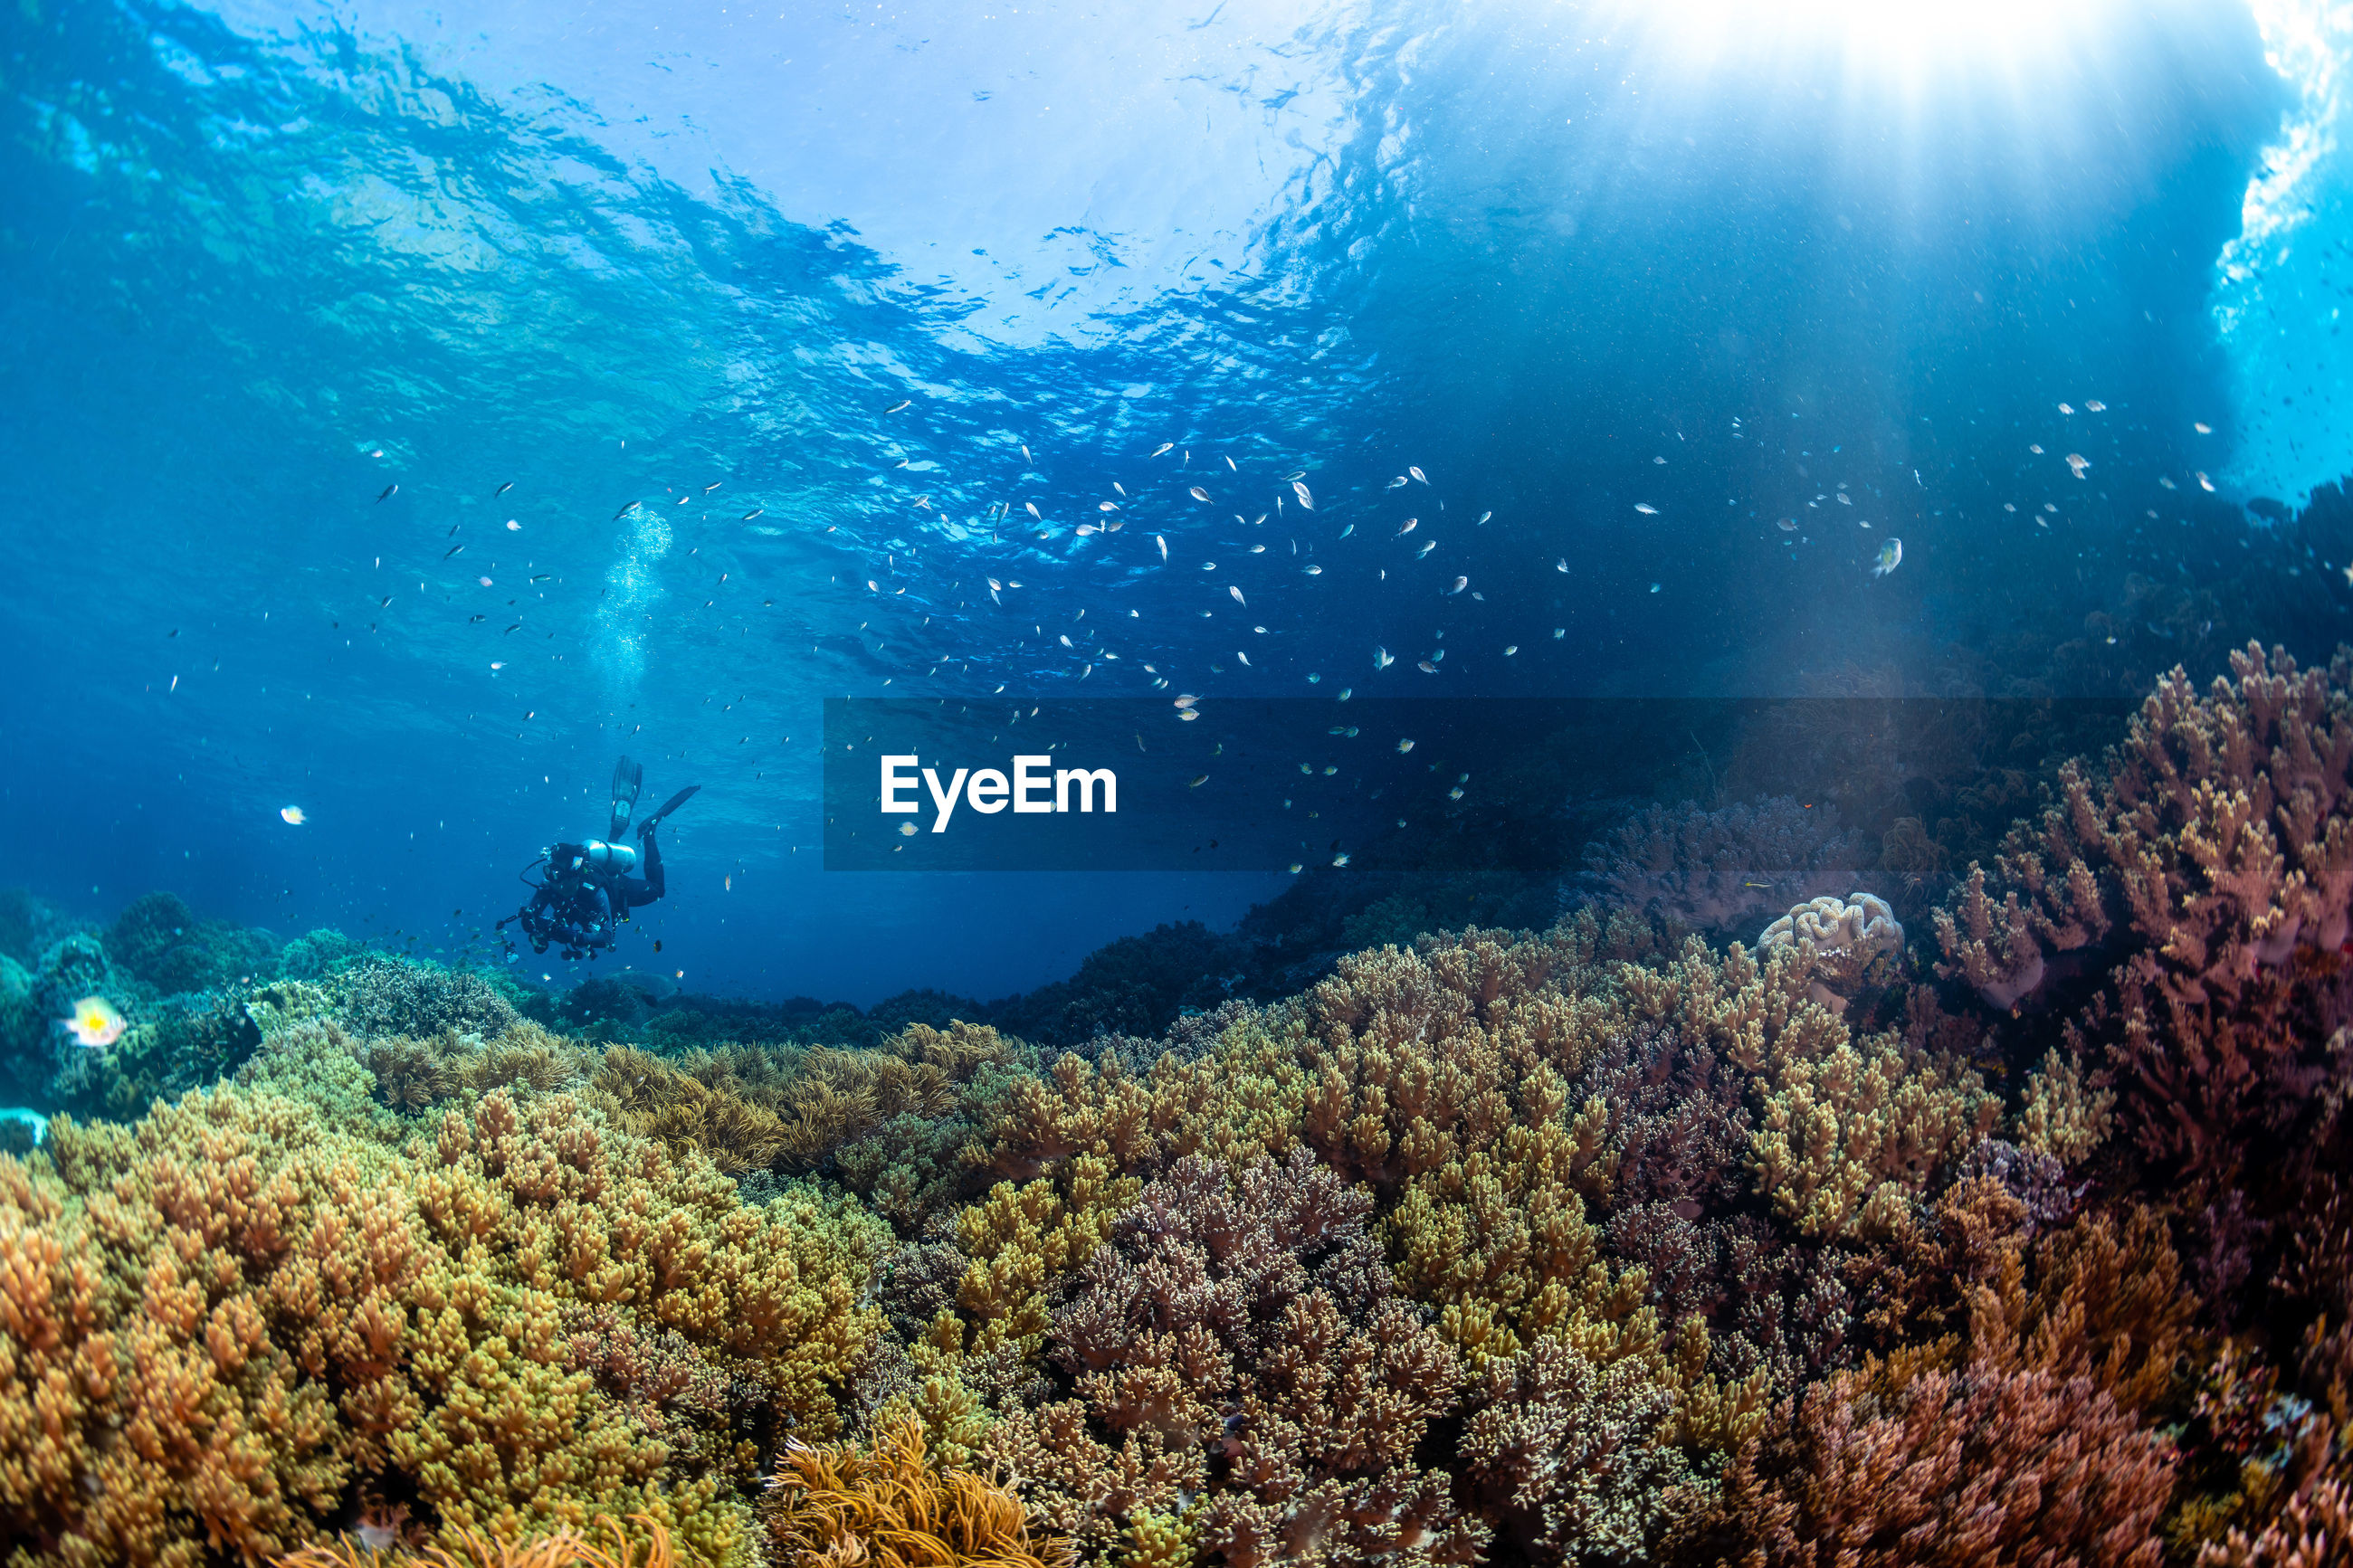 SCENIC VIEW OF SEA AND FISH SWIMMING